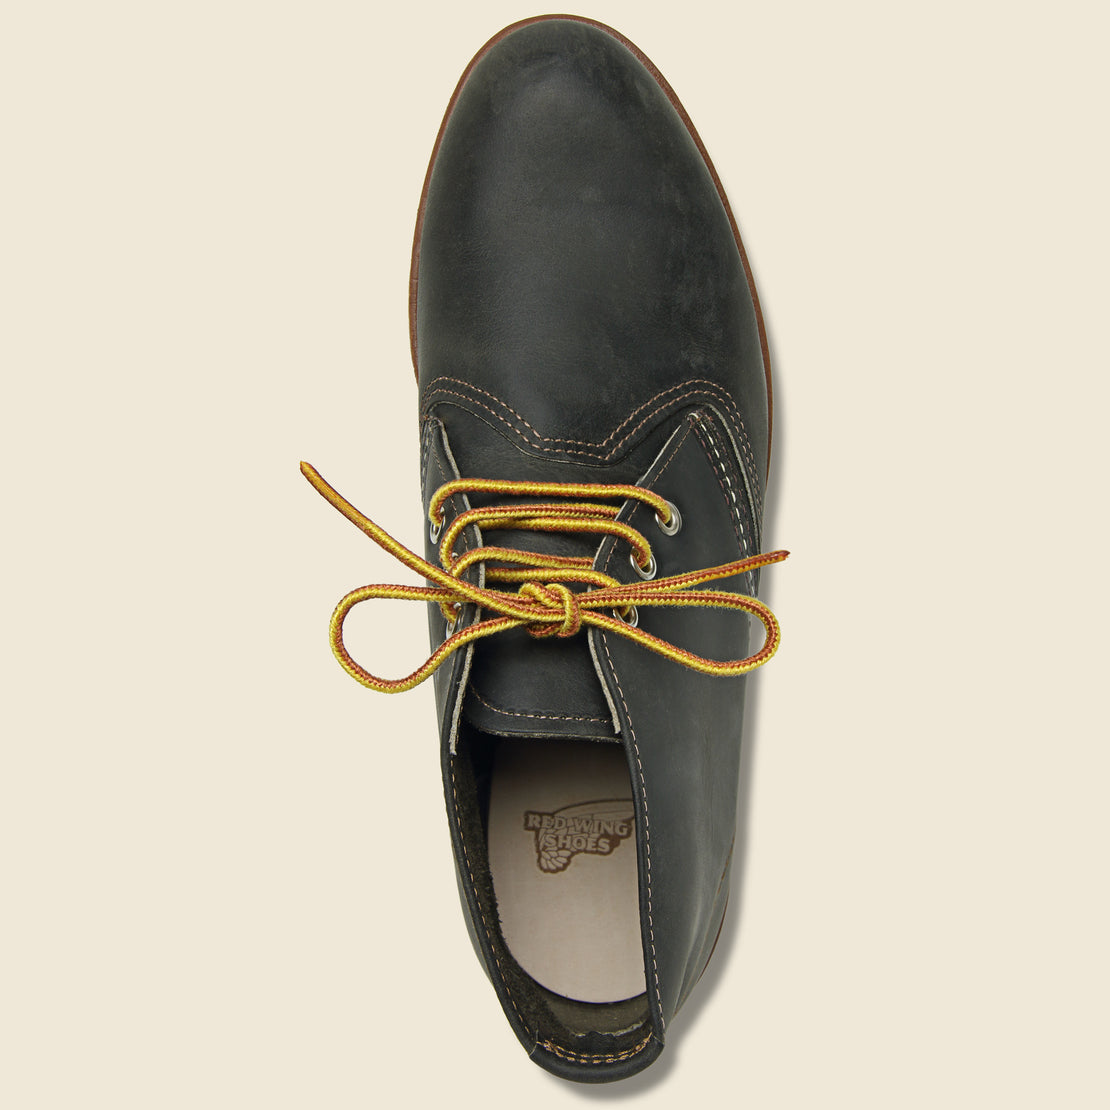 Classic Chukka - Charcoal Rough & Tough - Red Wing - STAG Provisions - Shoes - Boots / Chukkas